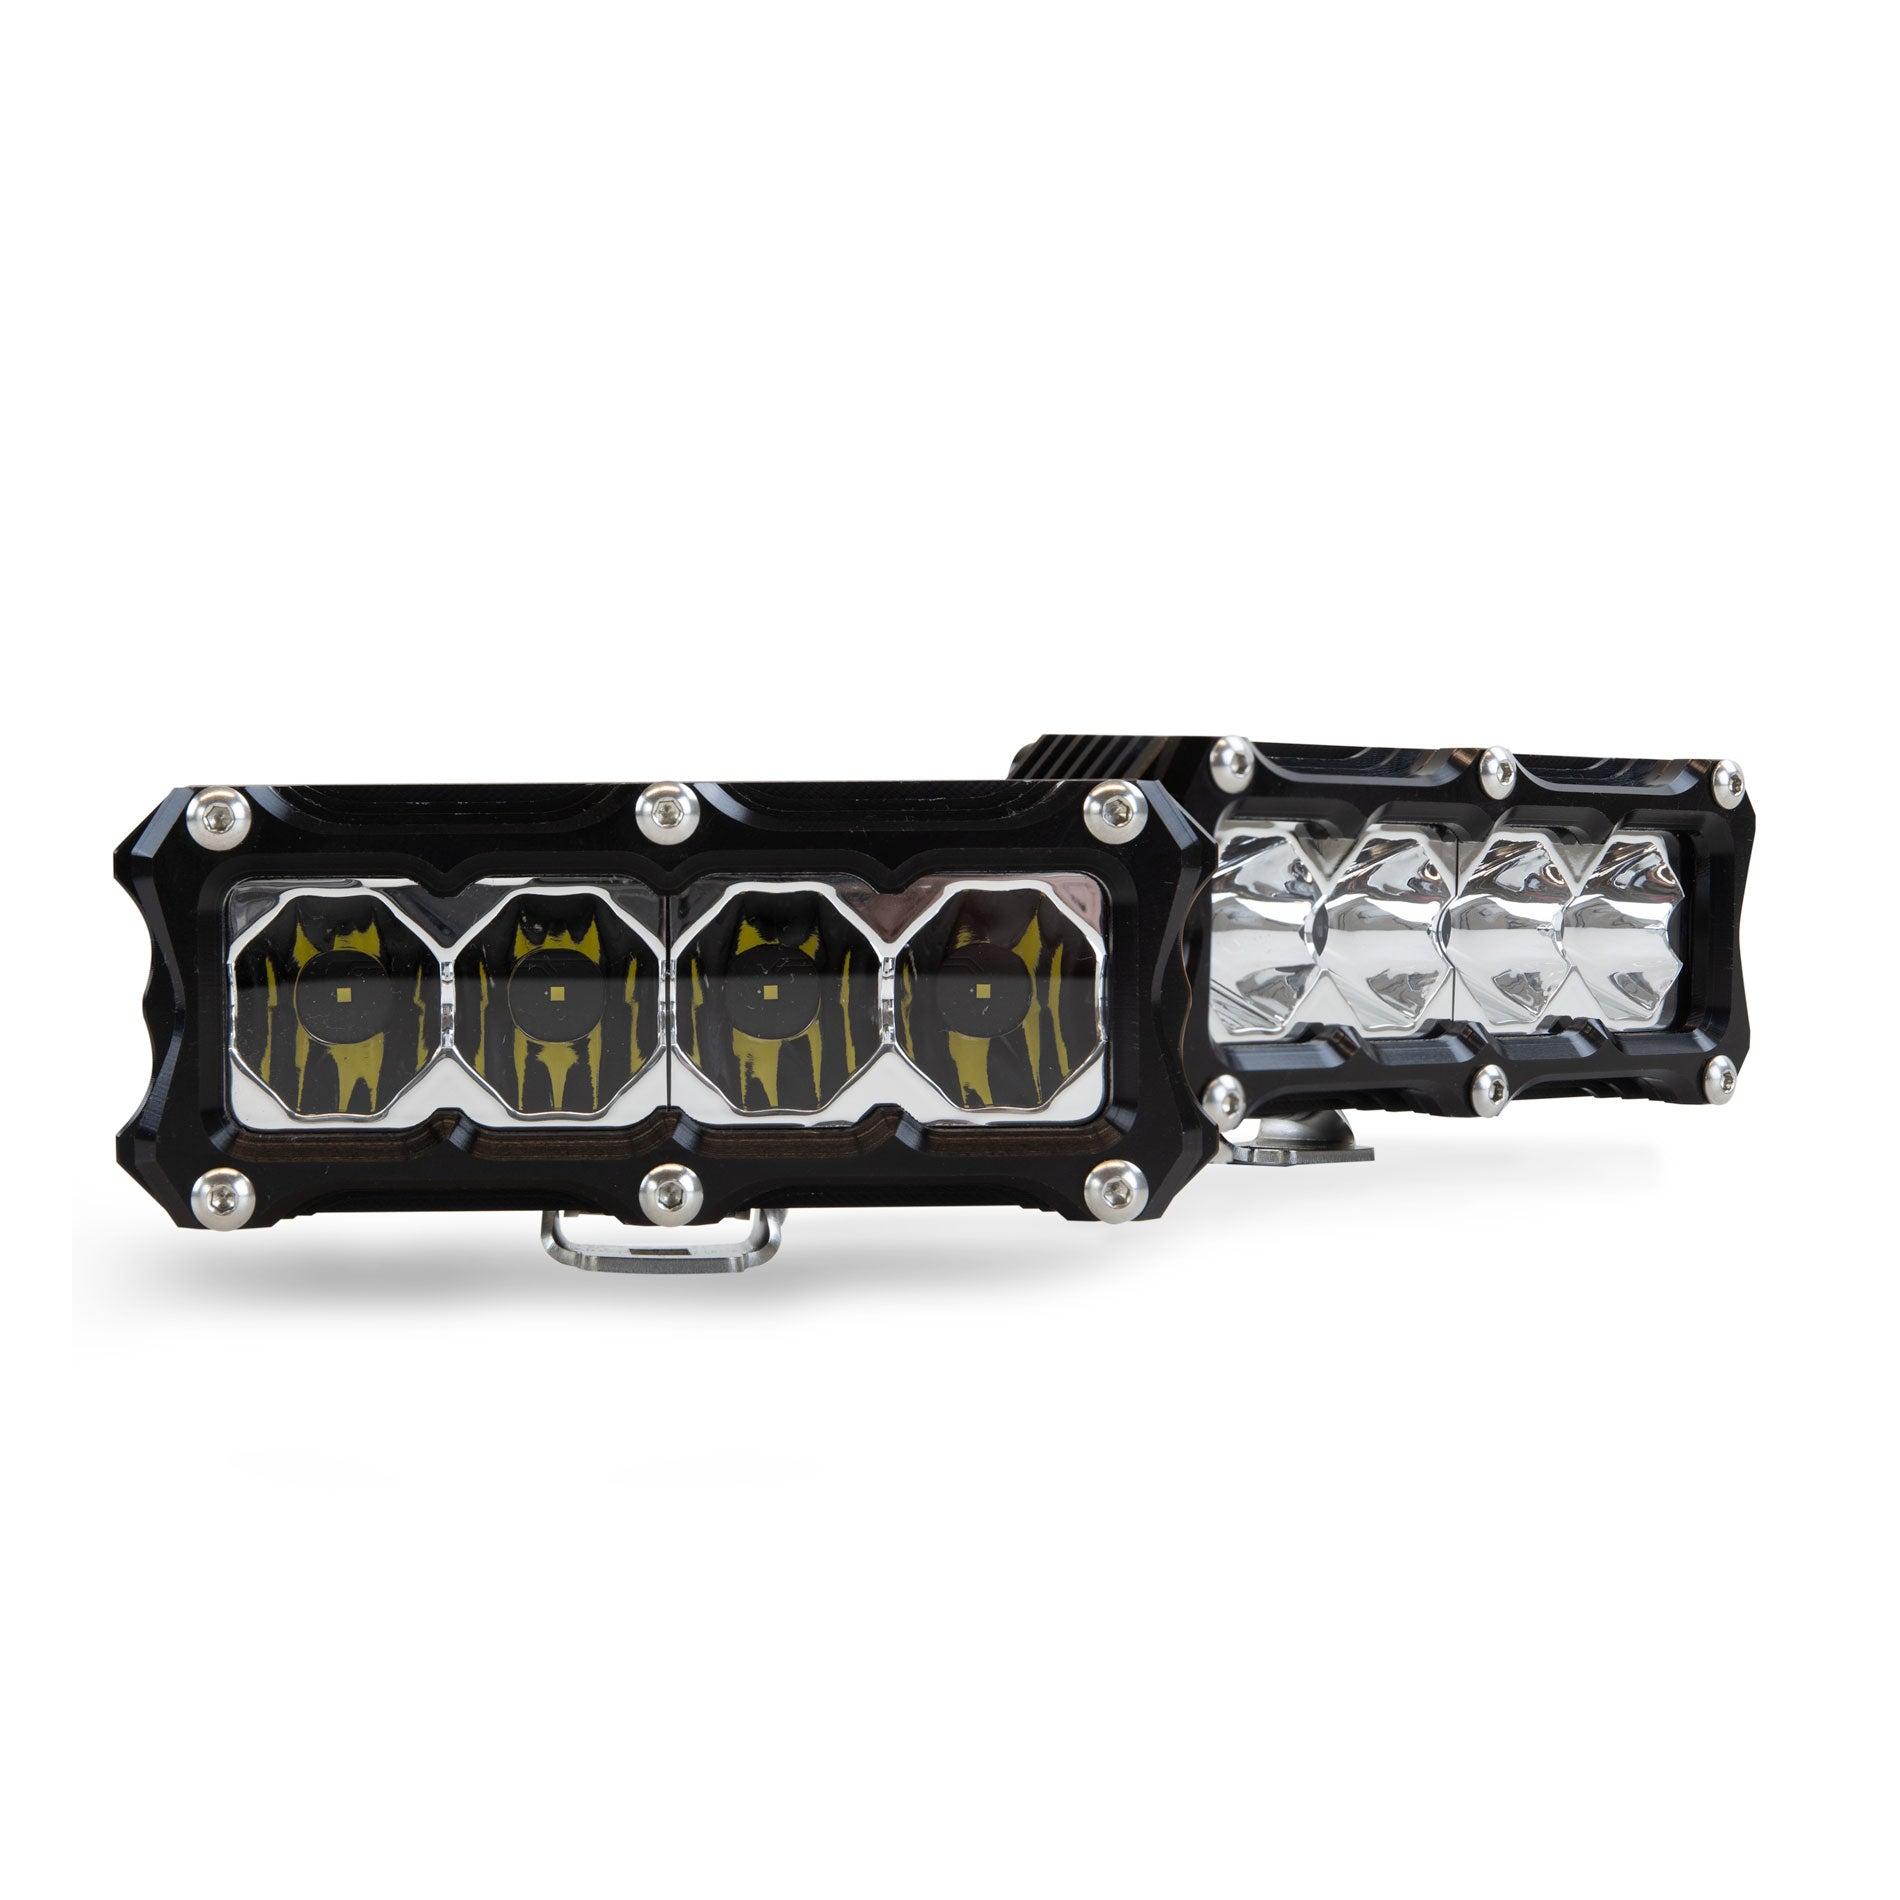 Heretic 6 Series Light Bar - BA-4 Pair Pack: Black Bezel | Stainless Bolts | Spot Reflector | Clear Lens